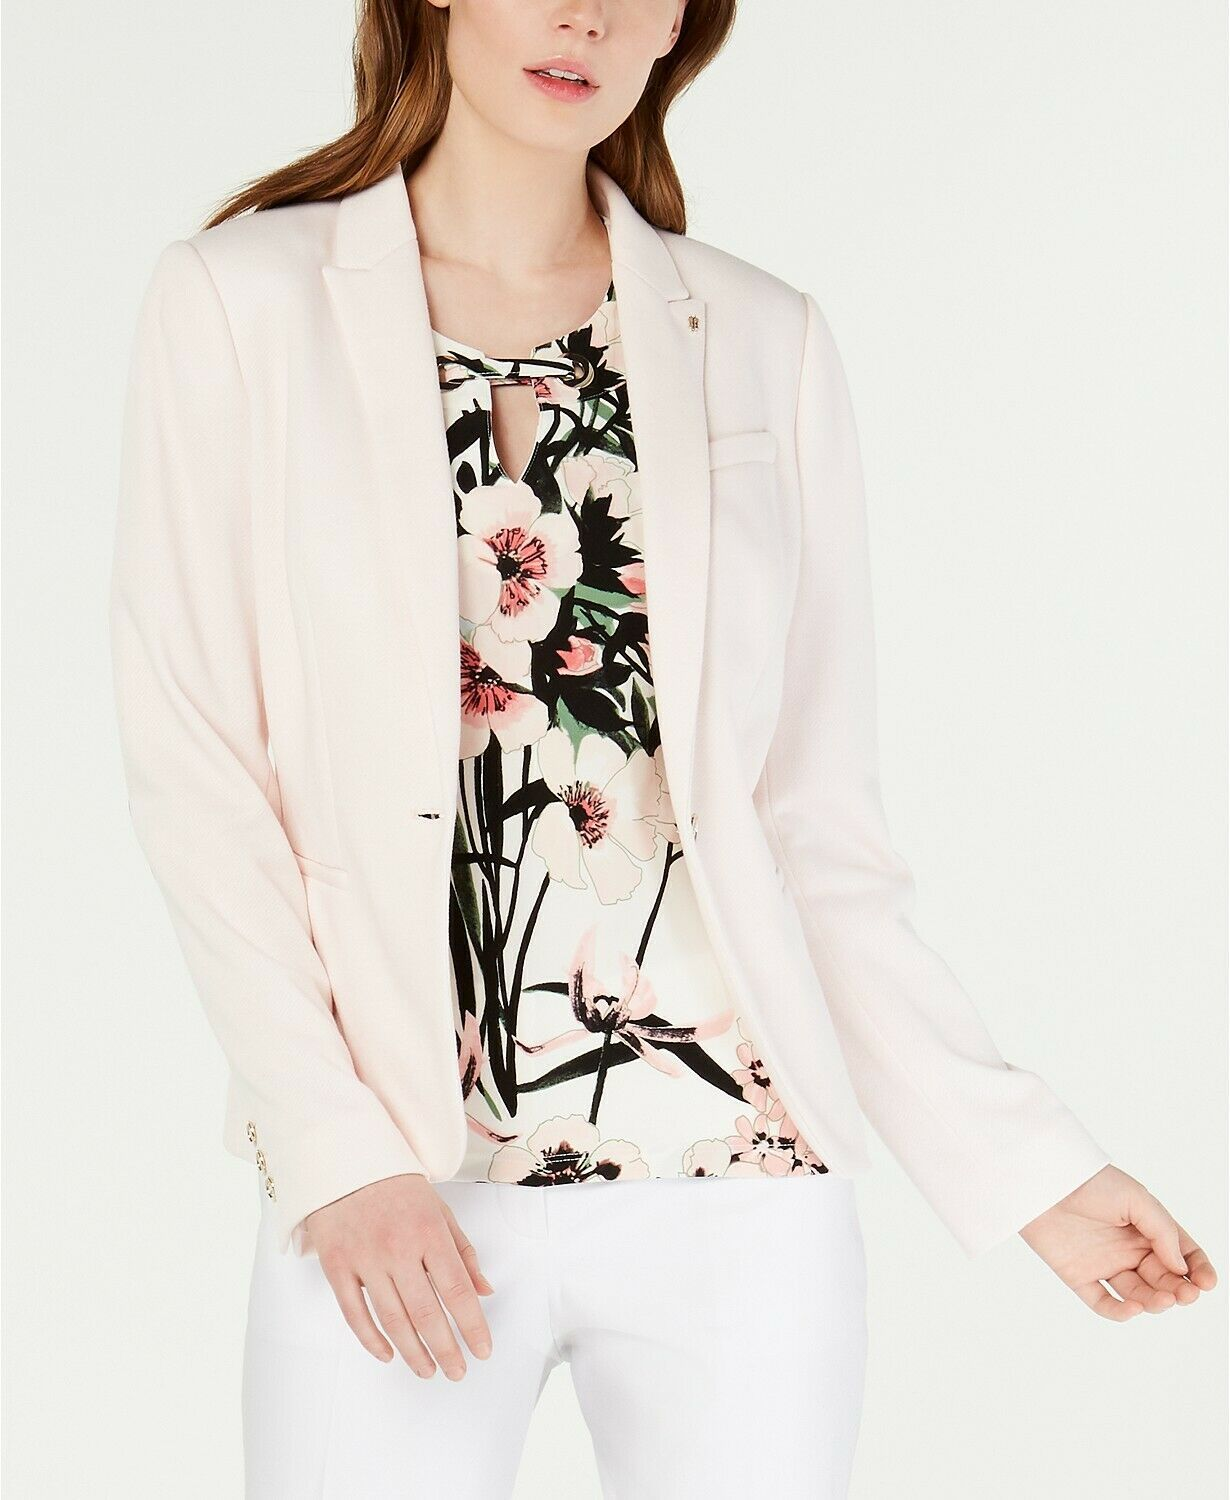 Primary image for Tommy Hilfiger WOMEN;S Sweatshirt Elbow-Patch Blazer,LIGHT PINK SIZE 2